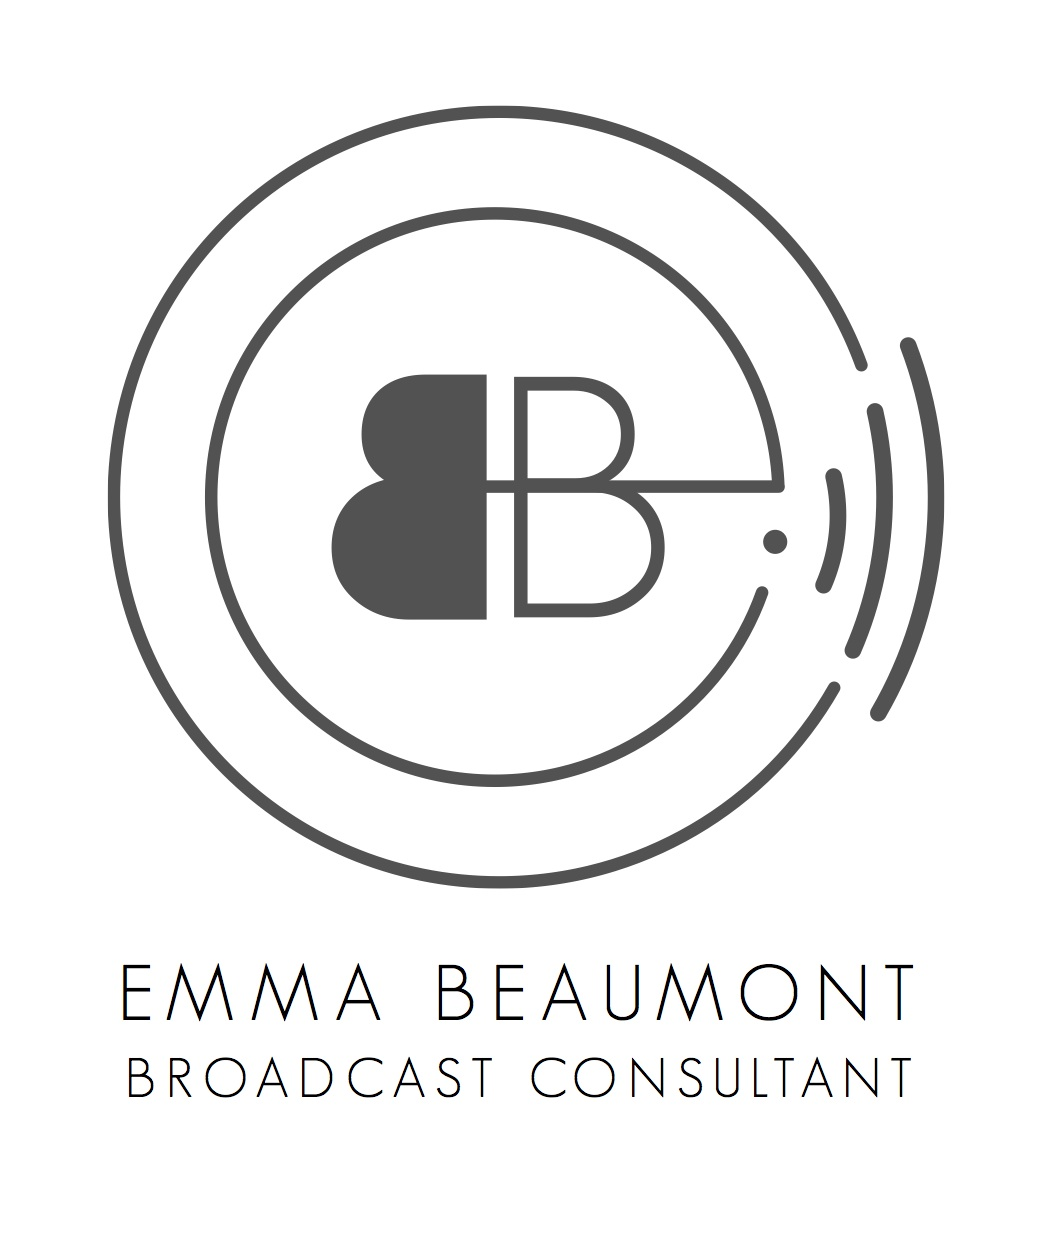 Emma Beaumont Broadcast Consulting